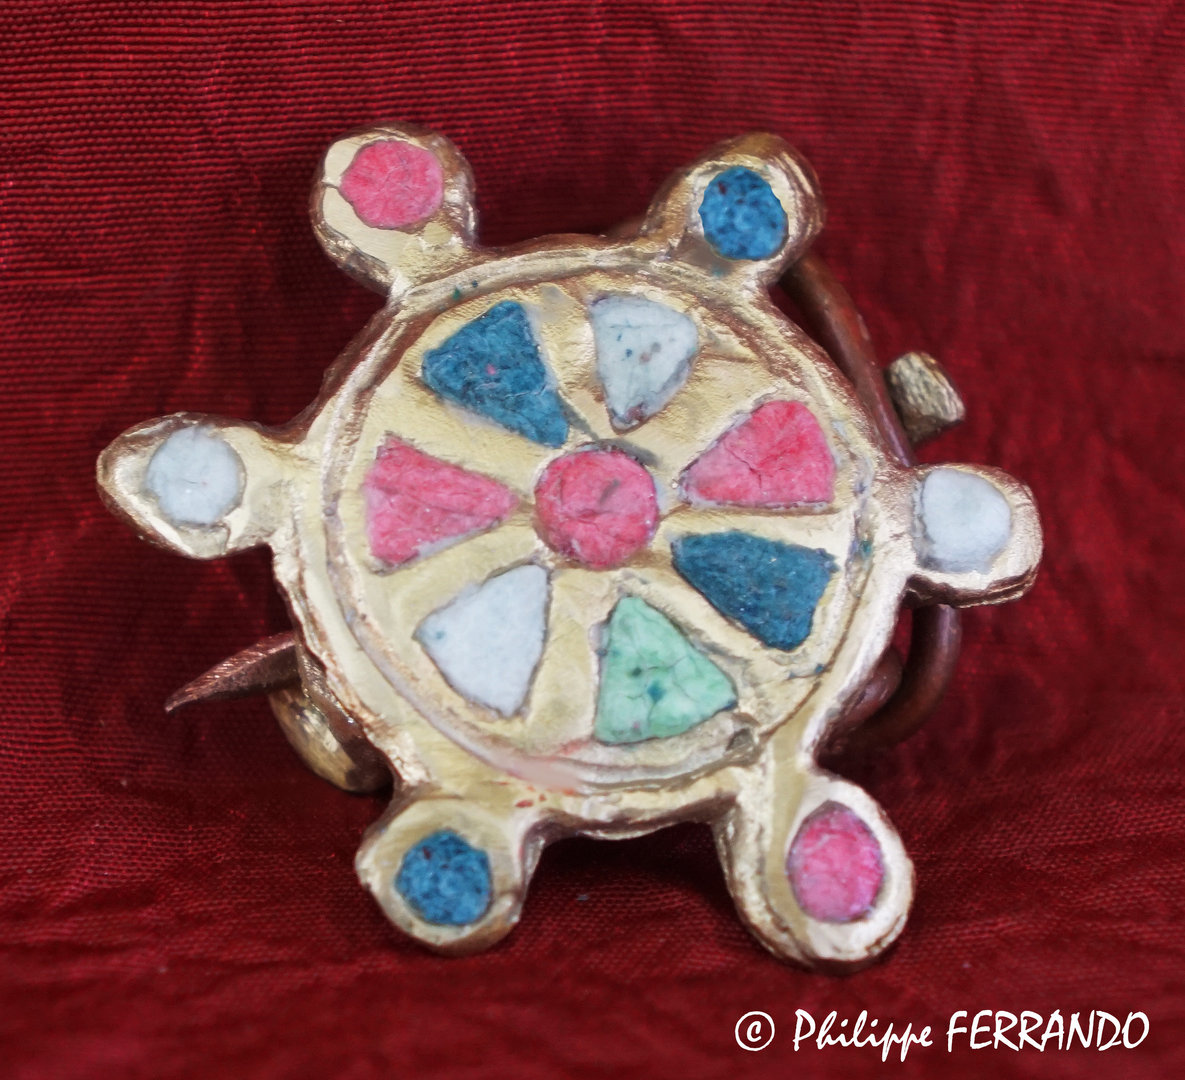 ANCIENT JEWERLY - ENAMELLED CIRCULAR FIBULA WITH 6 SATELLITES ON THE EDGES